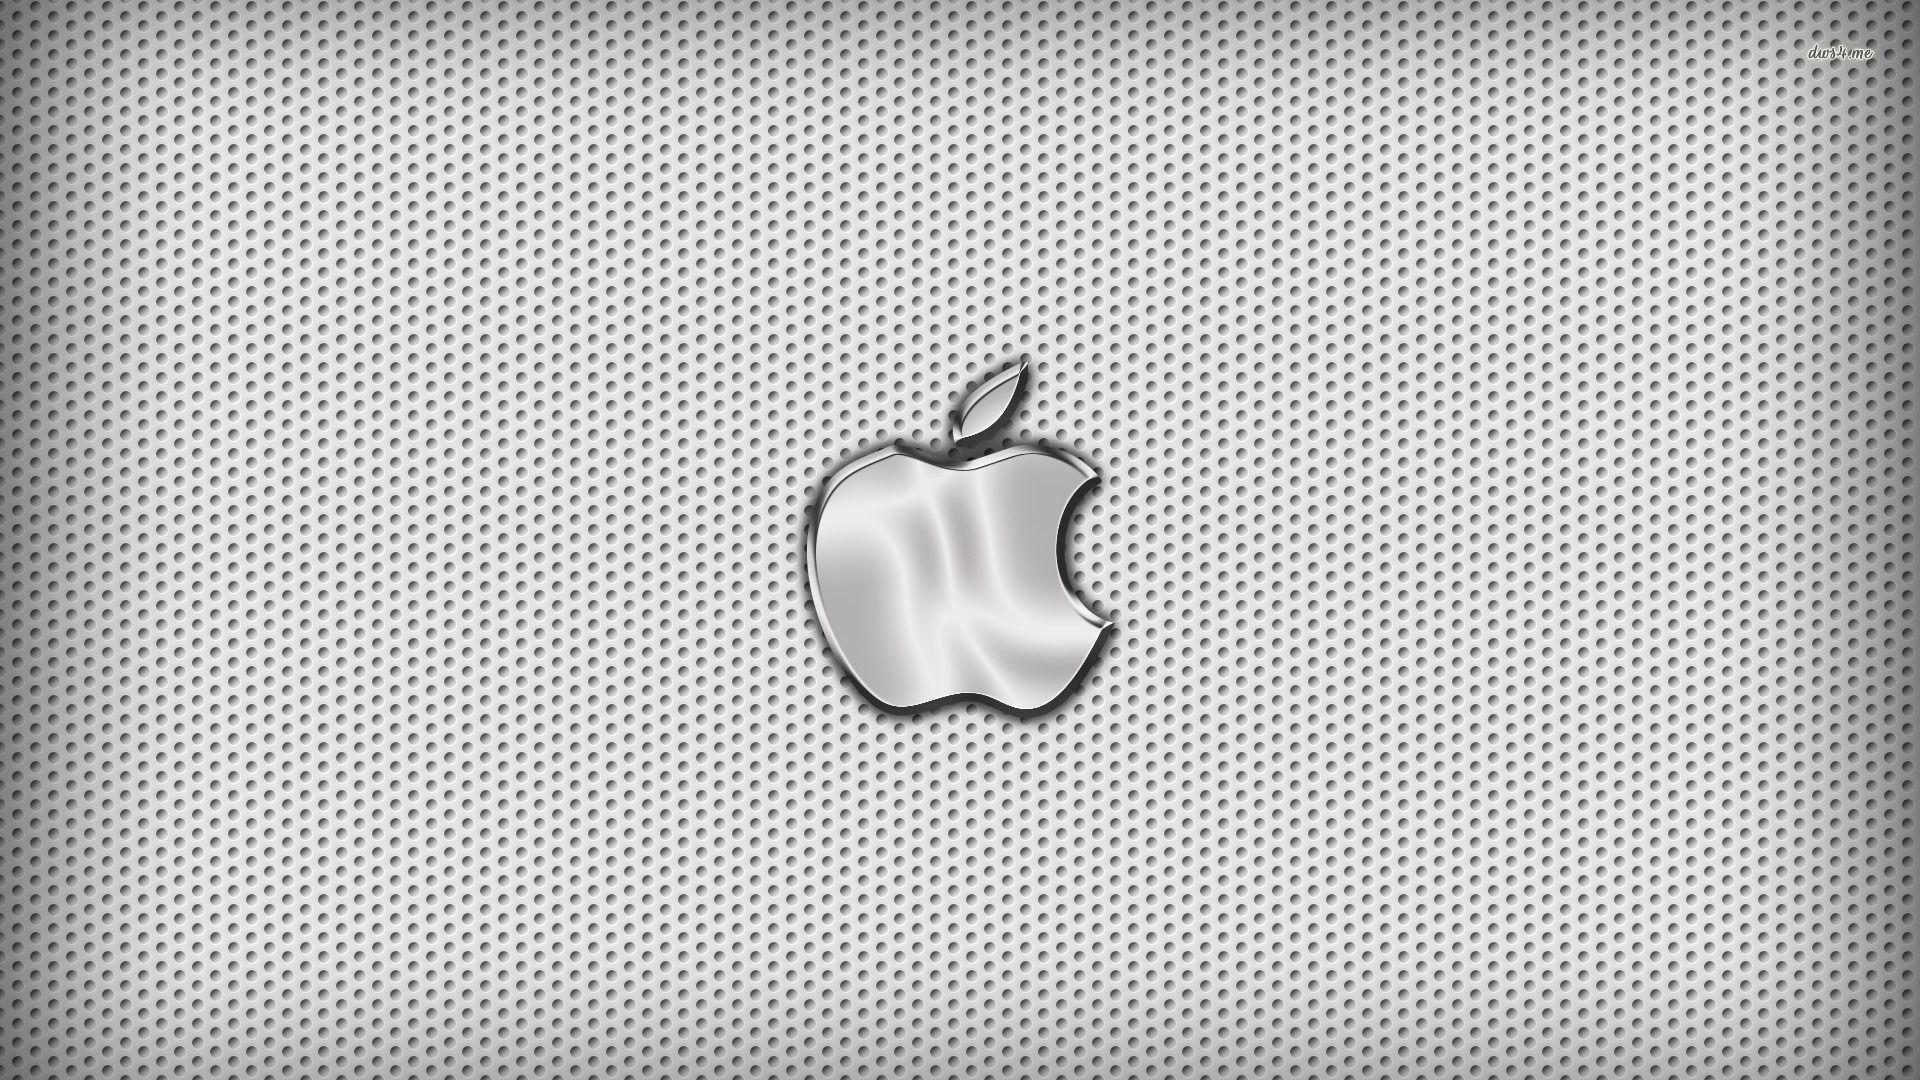 Apple Logo Wallpapers Hd 1080p Wallpaper Cave